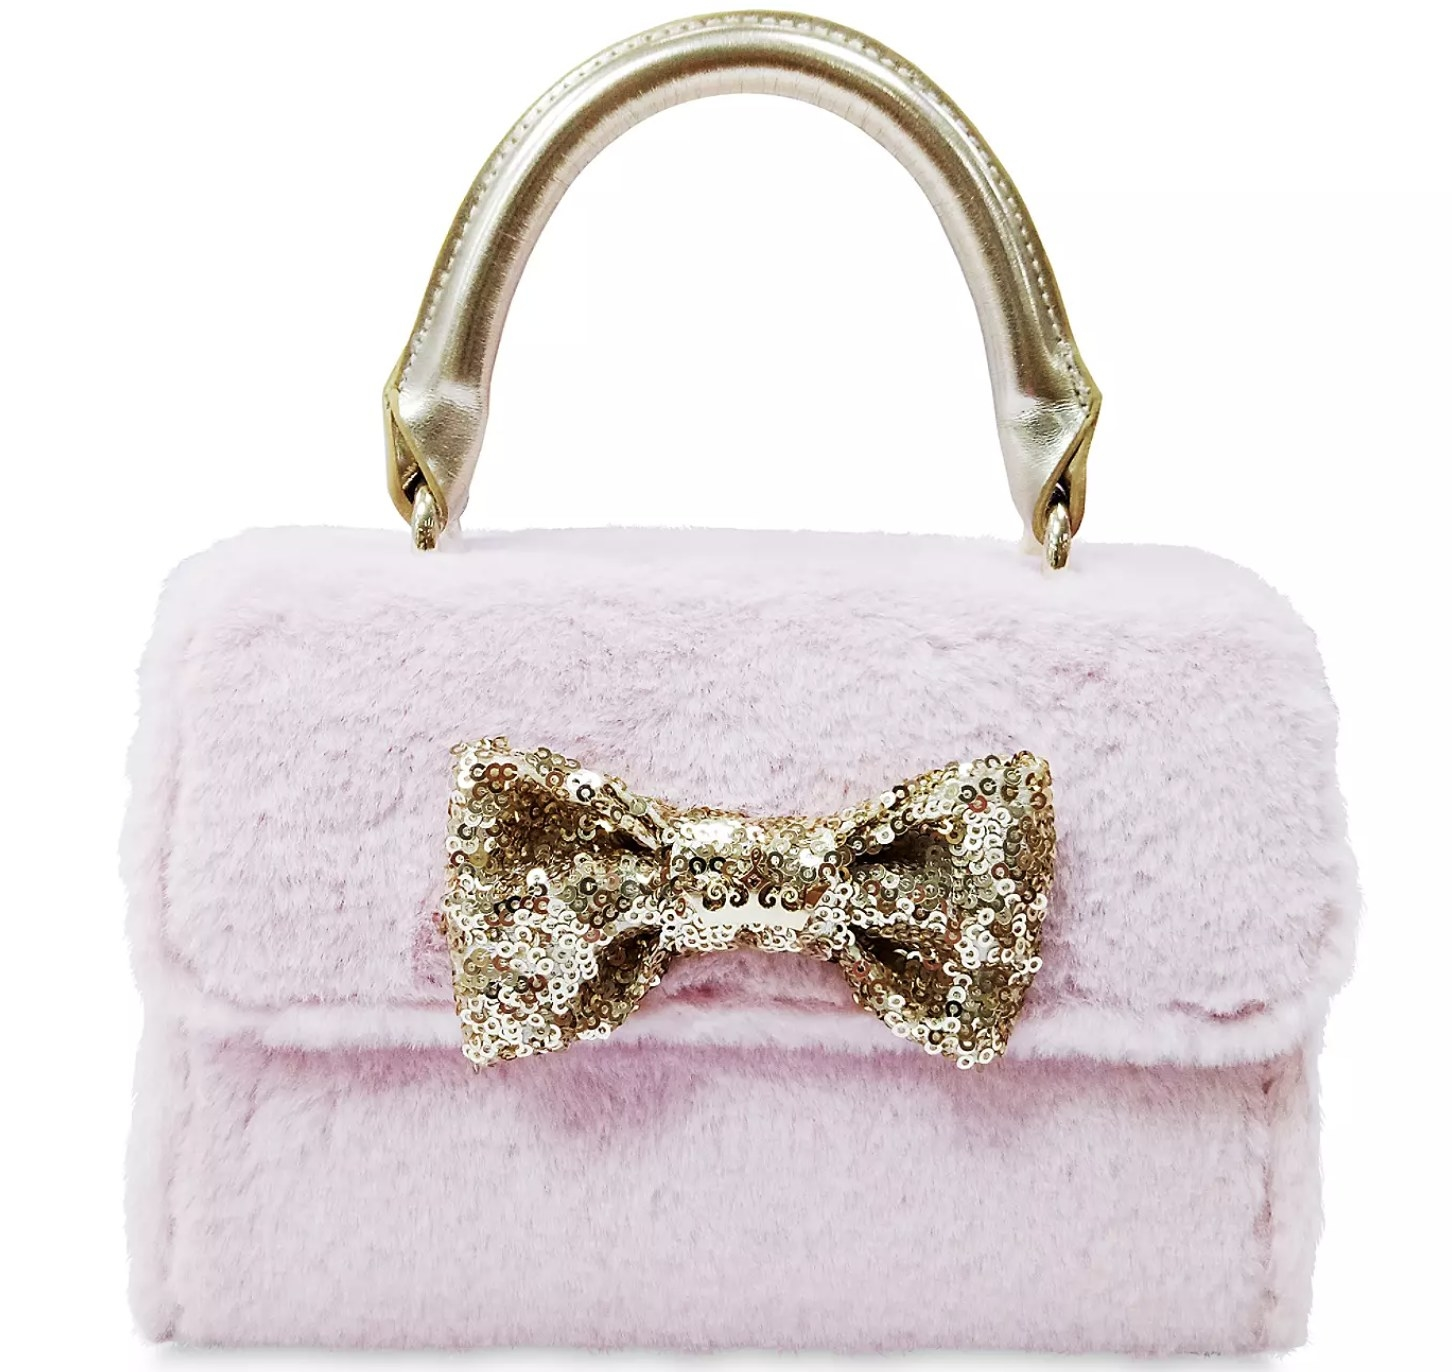 The  pink furry purse